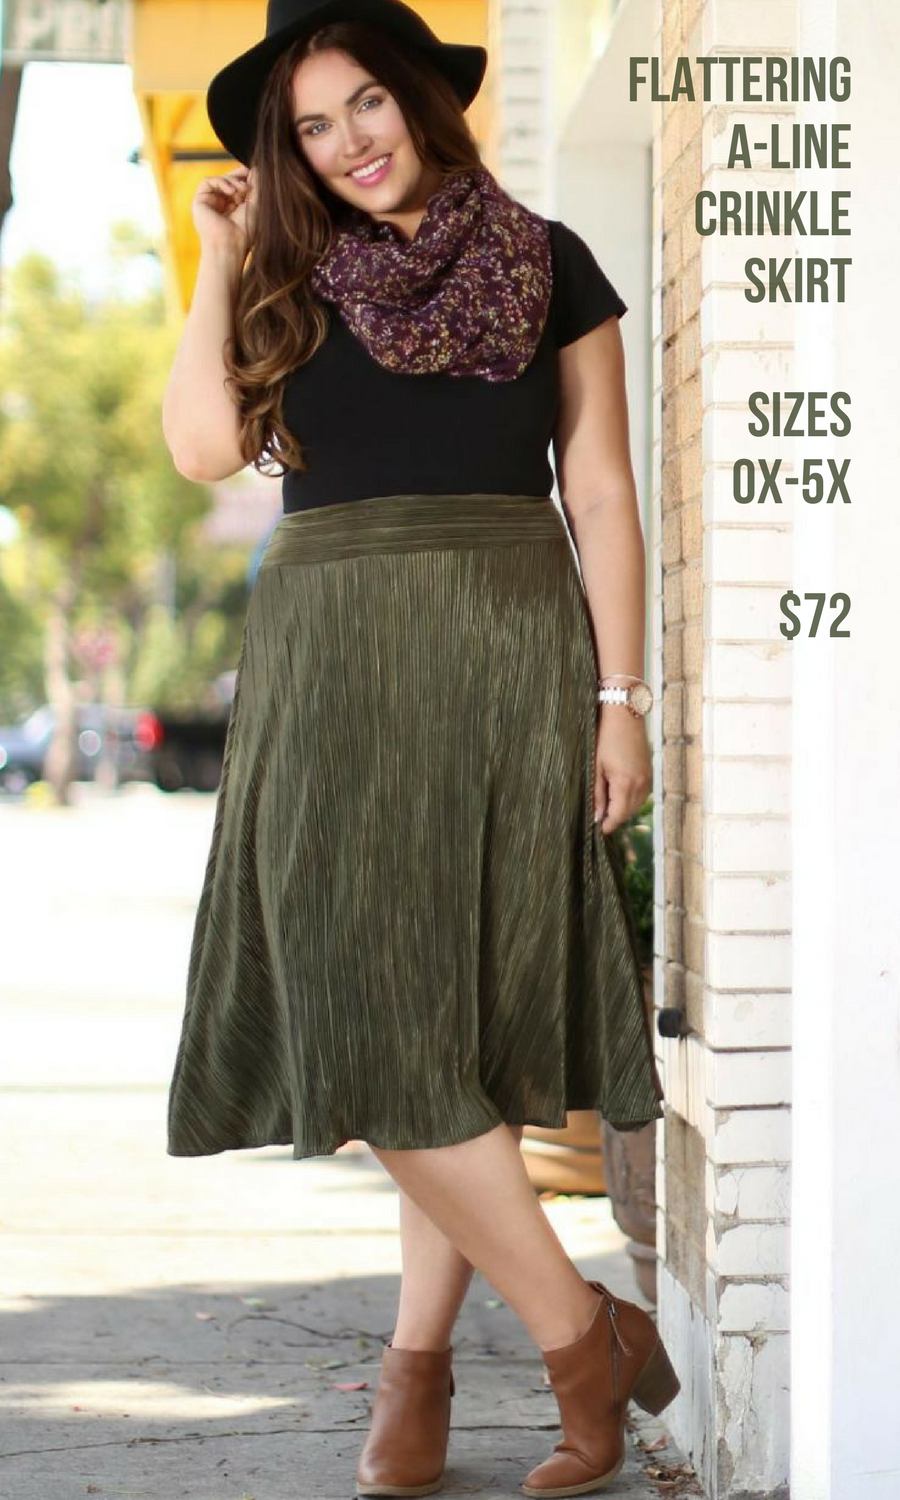 Cute crinkle skirt i really love this light olive green it looks